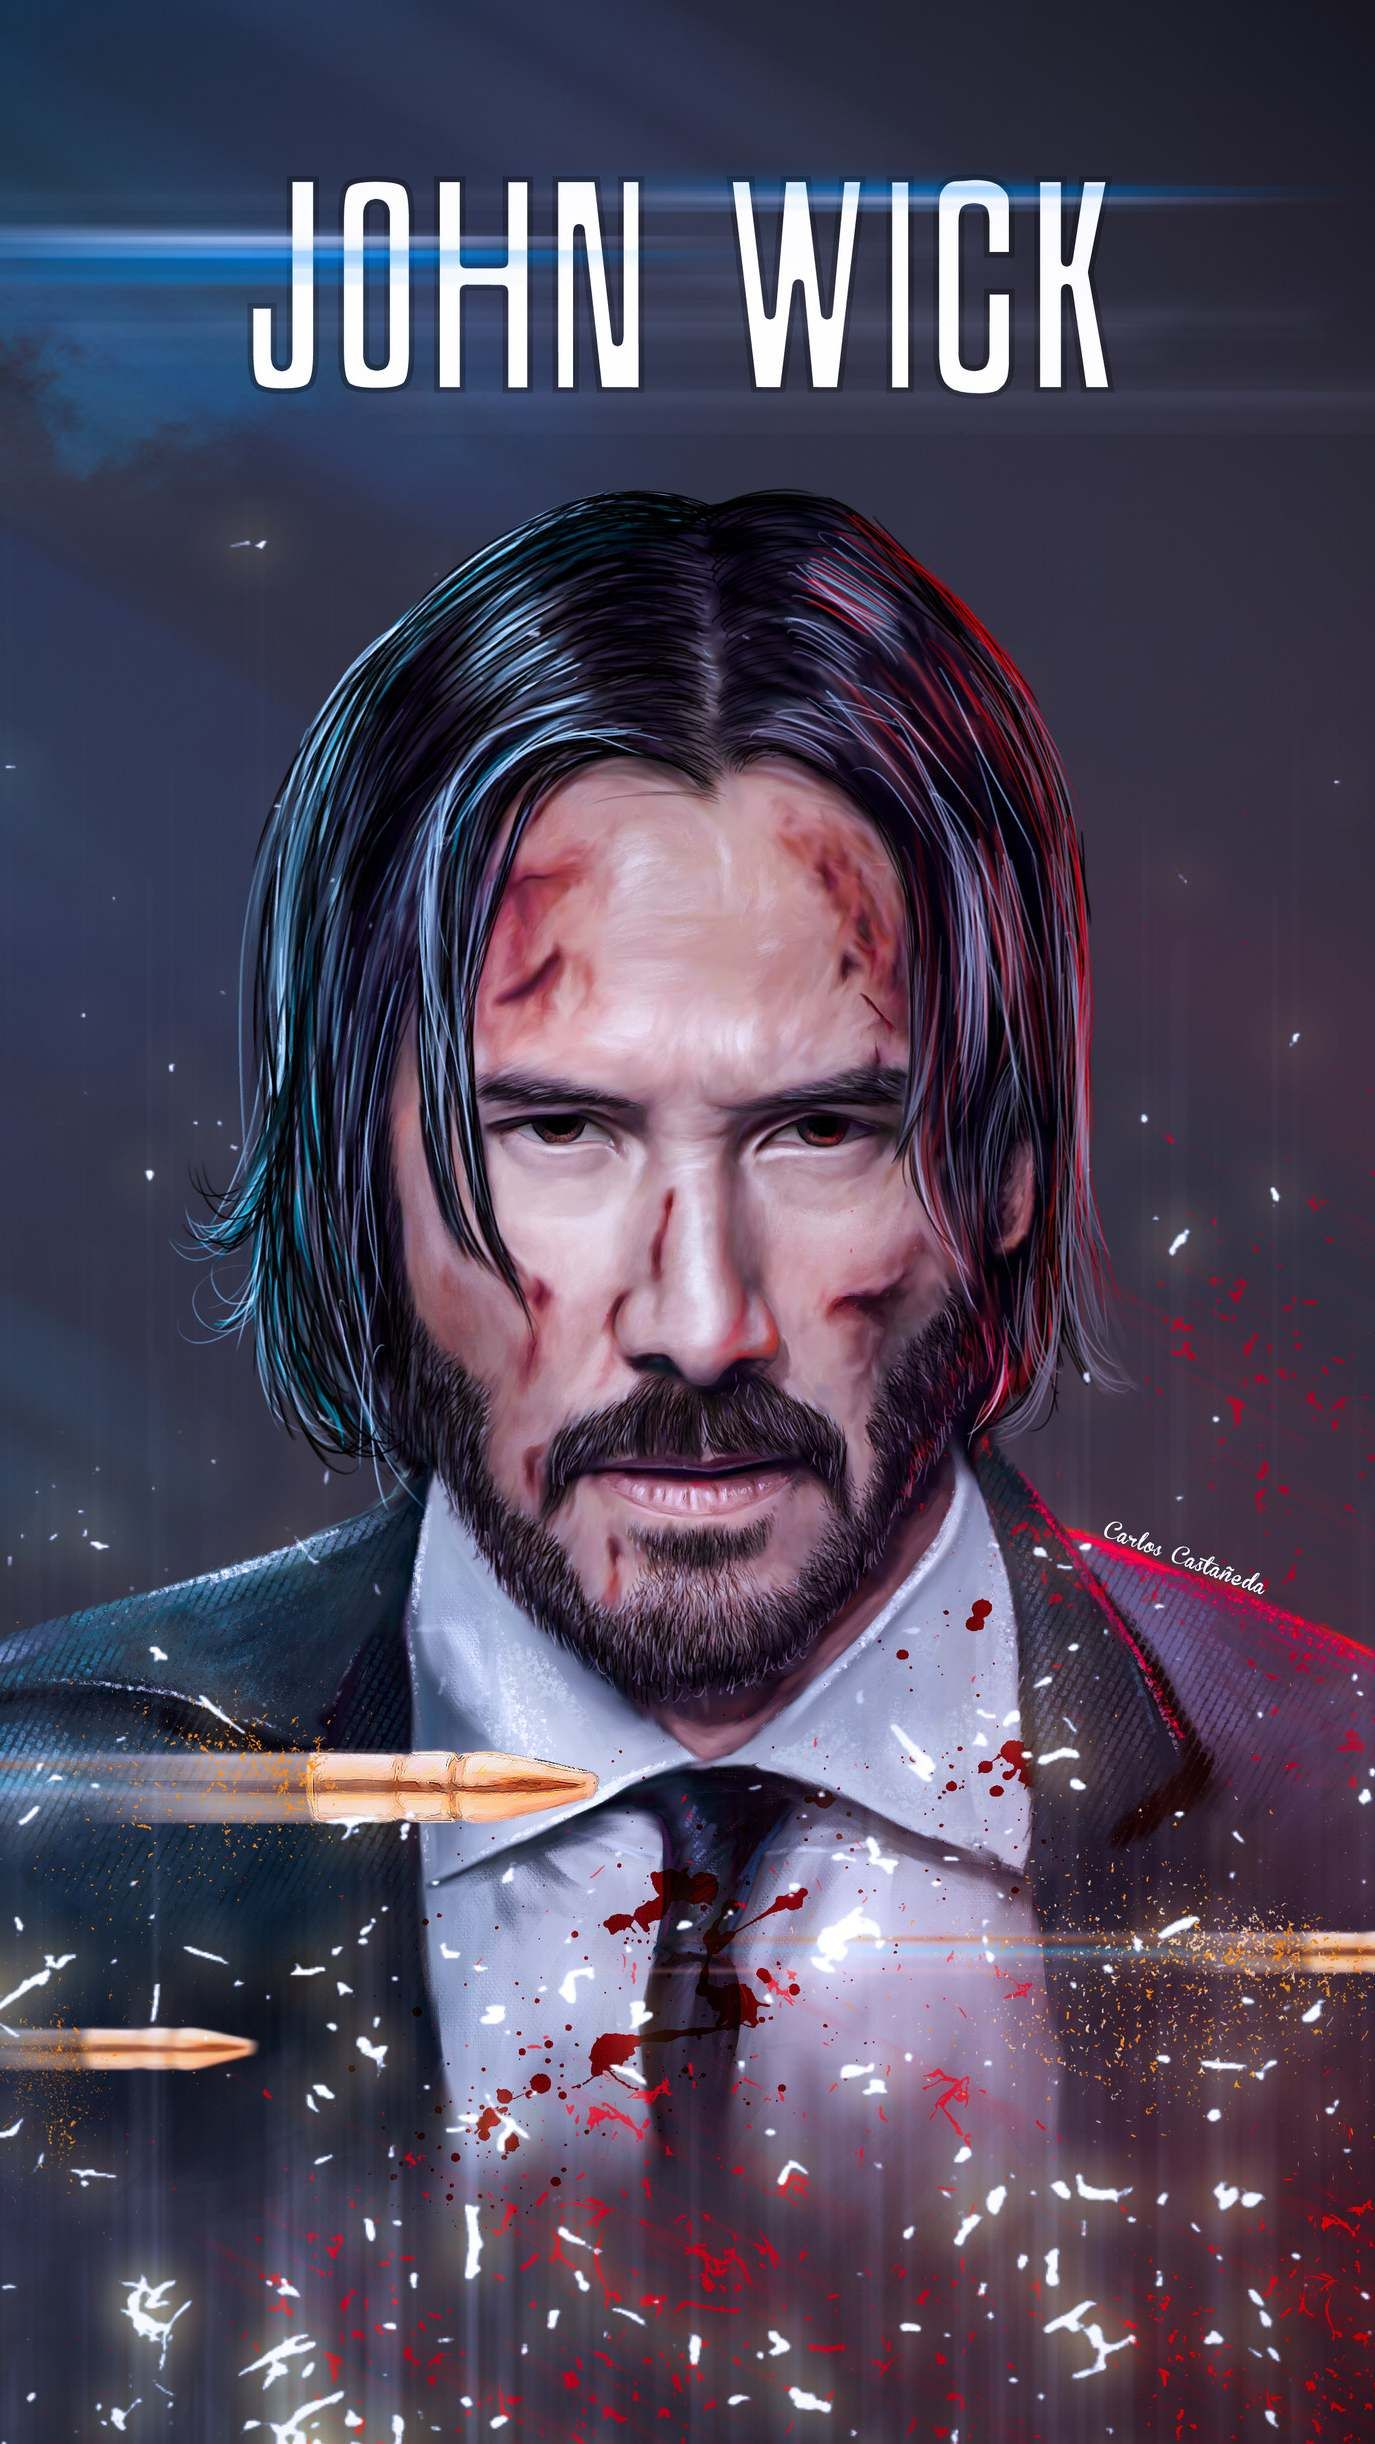 John Wick Chapter 2 (2017) HD Wallpaper From Gallsource